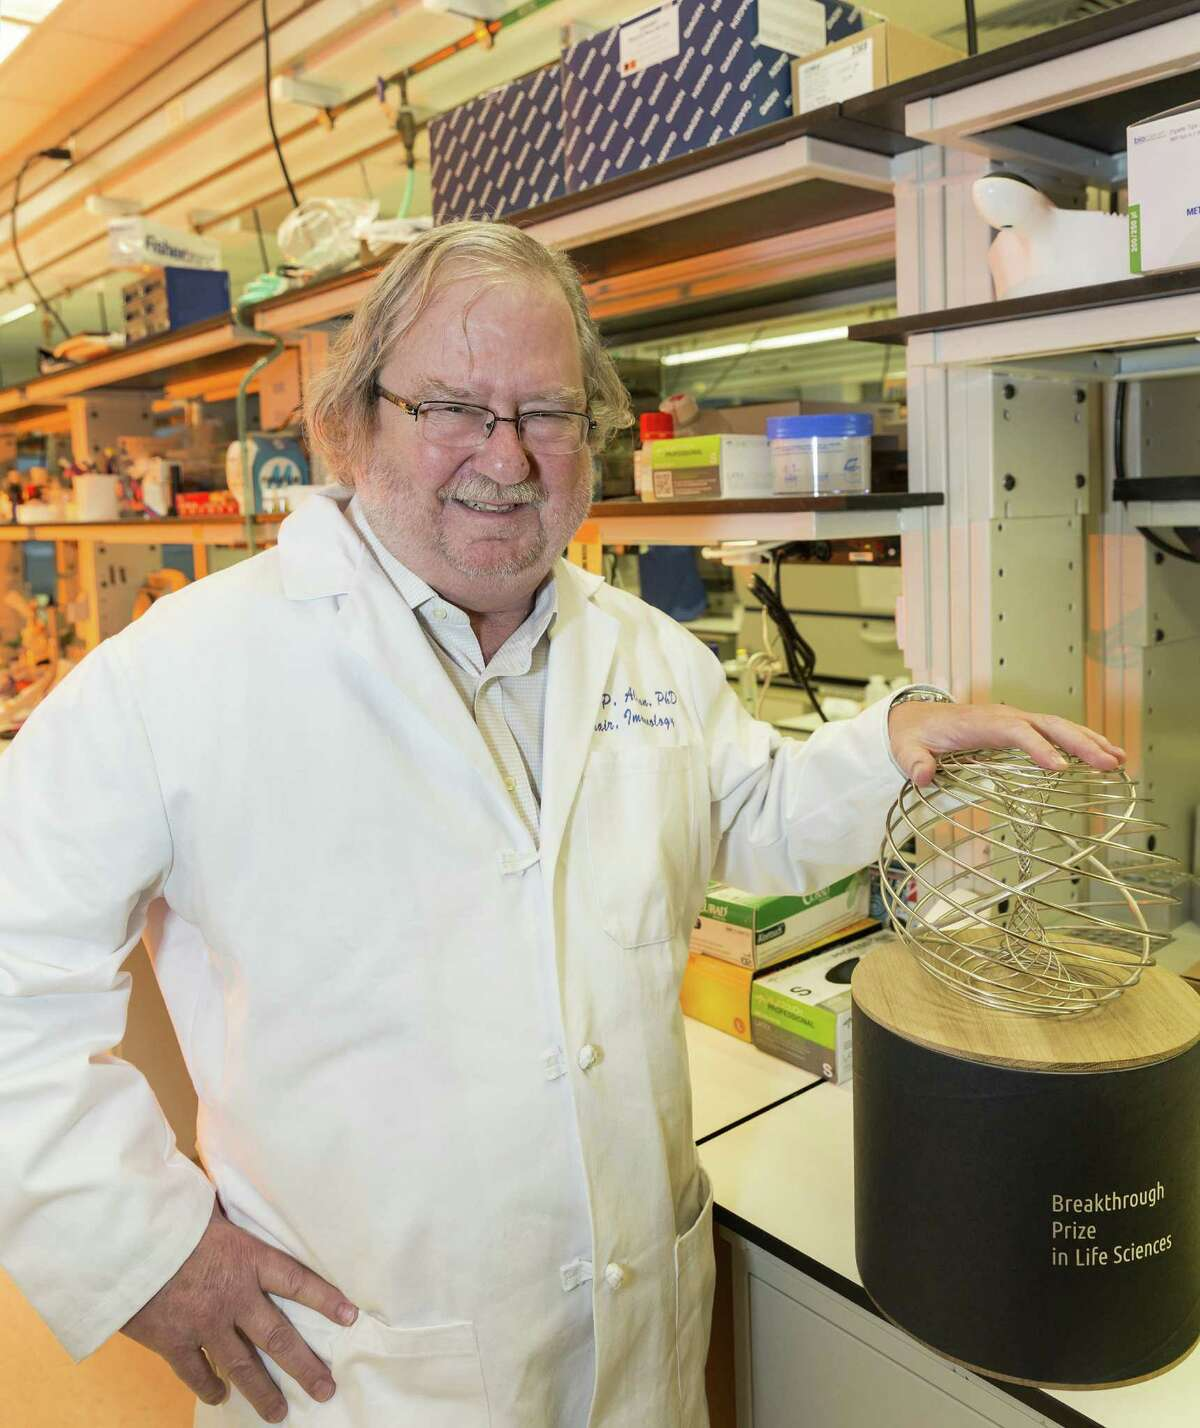 Jim Allison is chairman of immunology at the University of Texas M.D. Anderson Cancer Center.